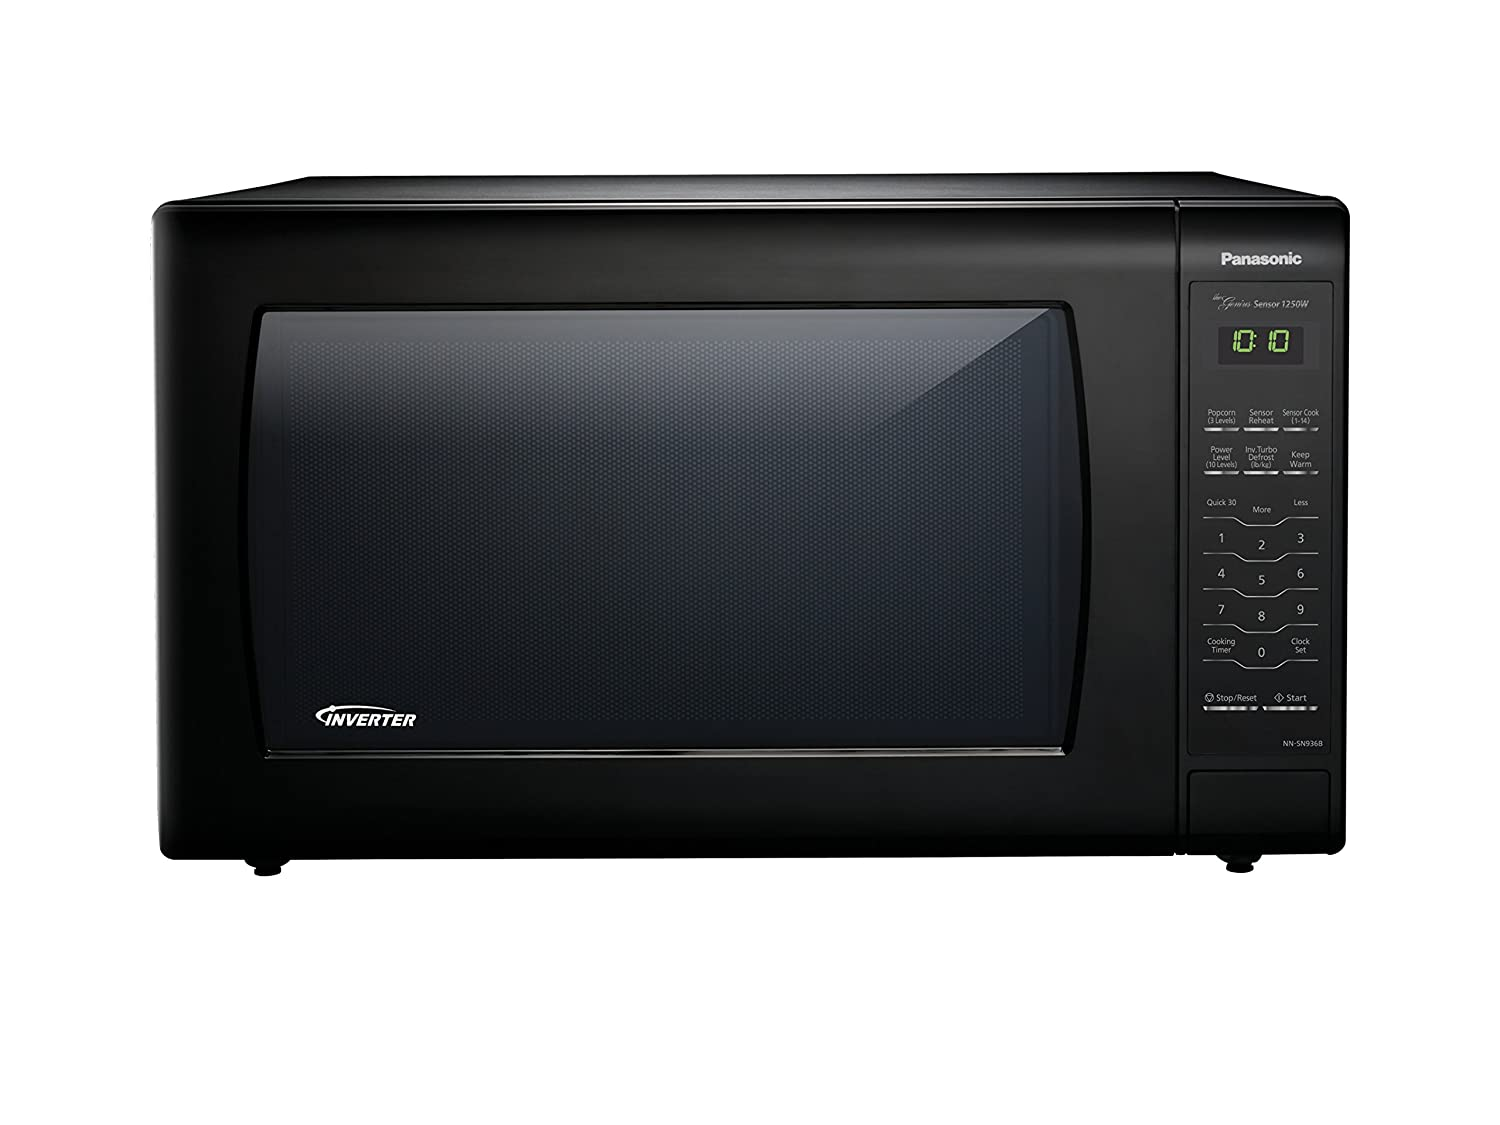 Countertop Microwave Black Friday : ... Microwave with Inverter Technology, 2.2 cu. ft. , Black Black Friday